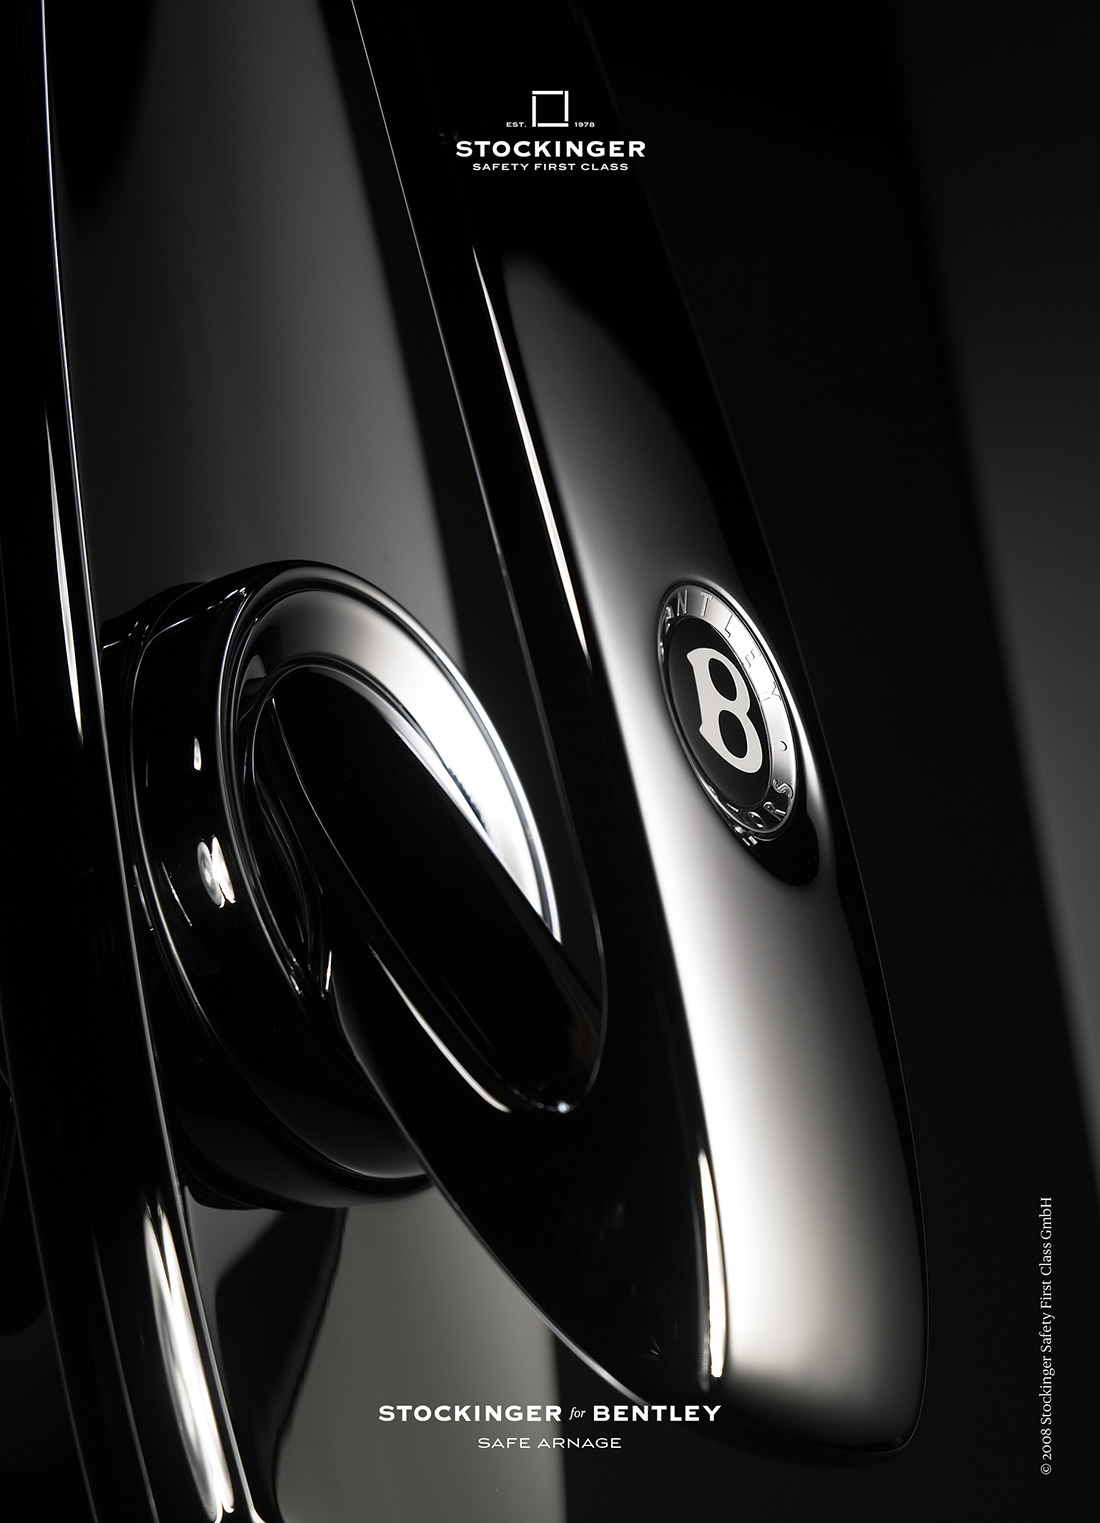 stockinger-for-bentley-5